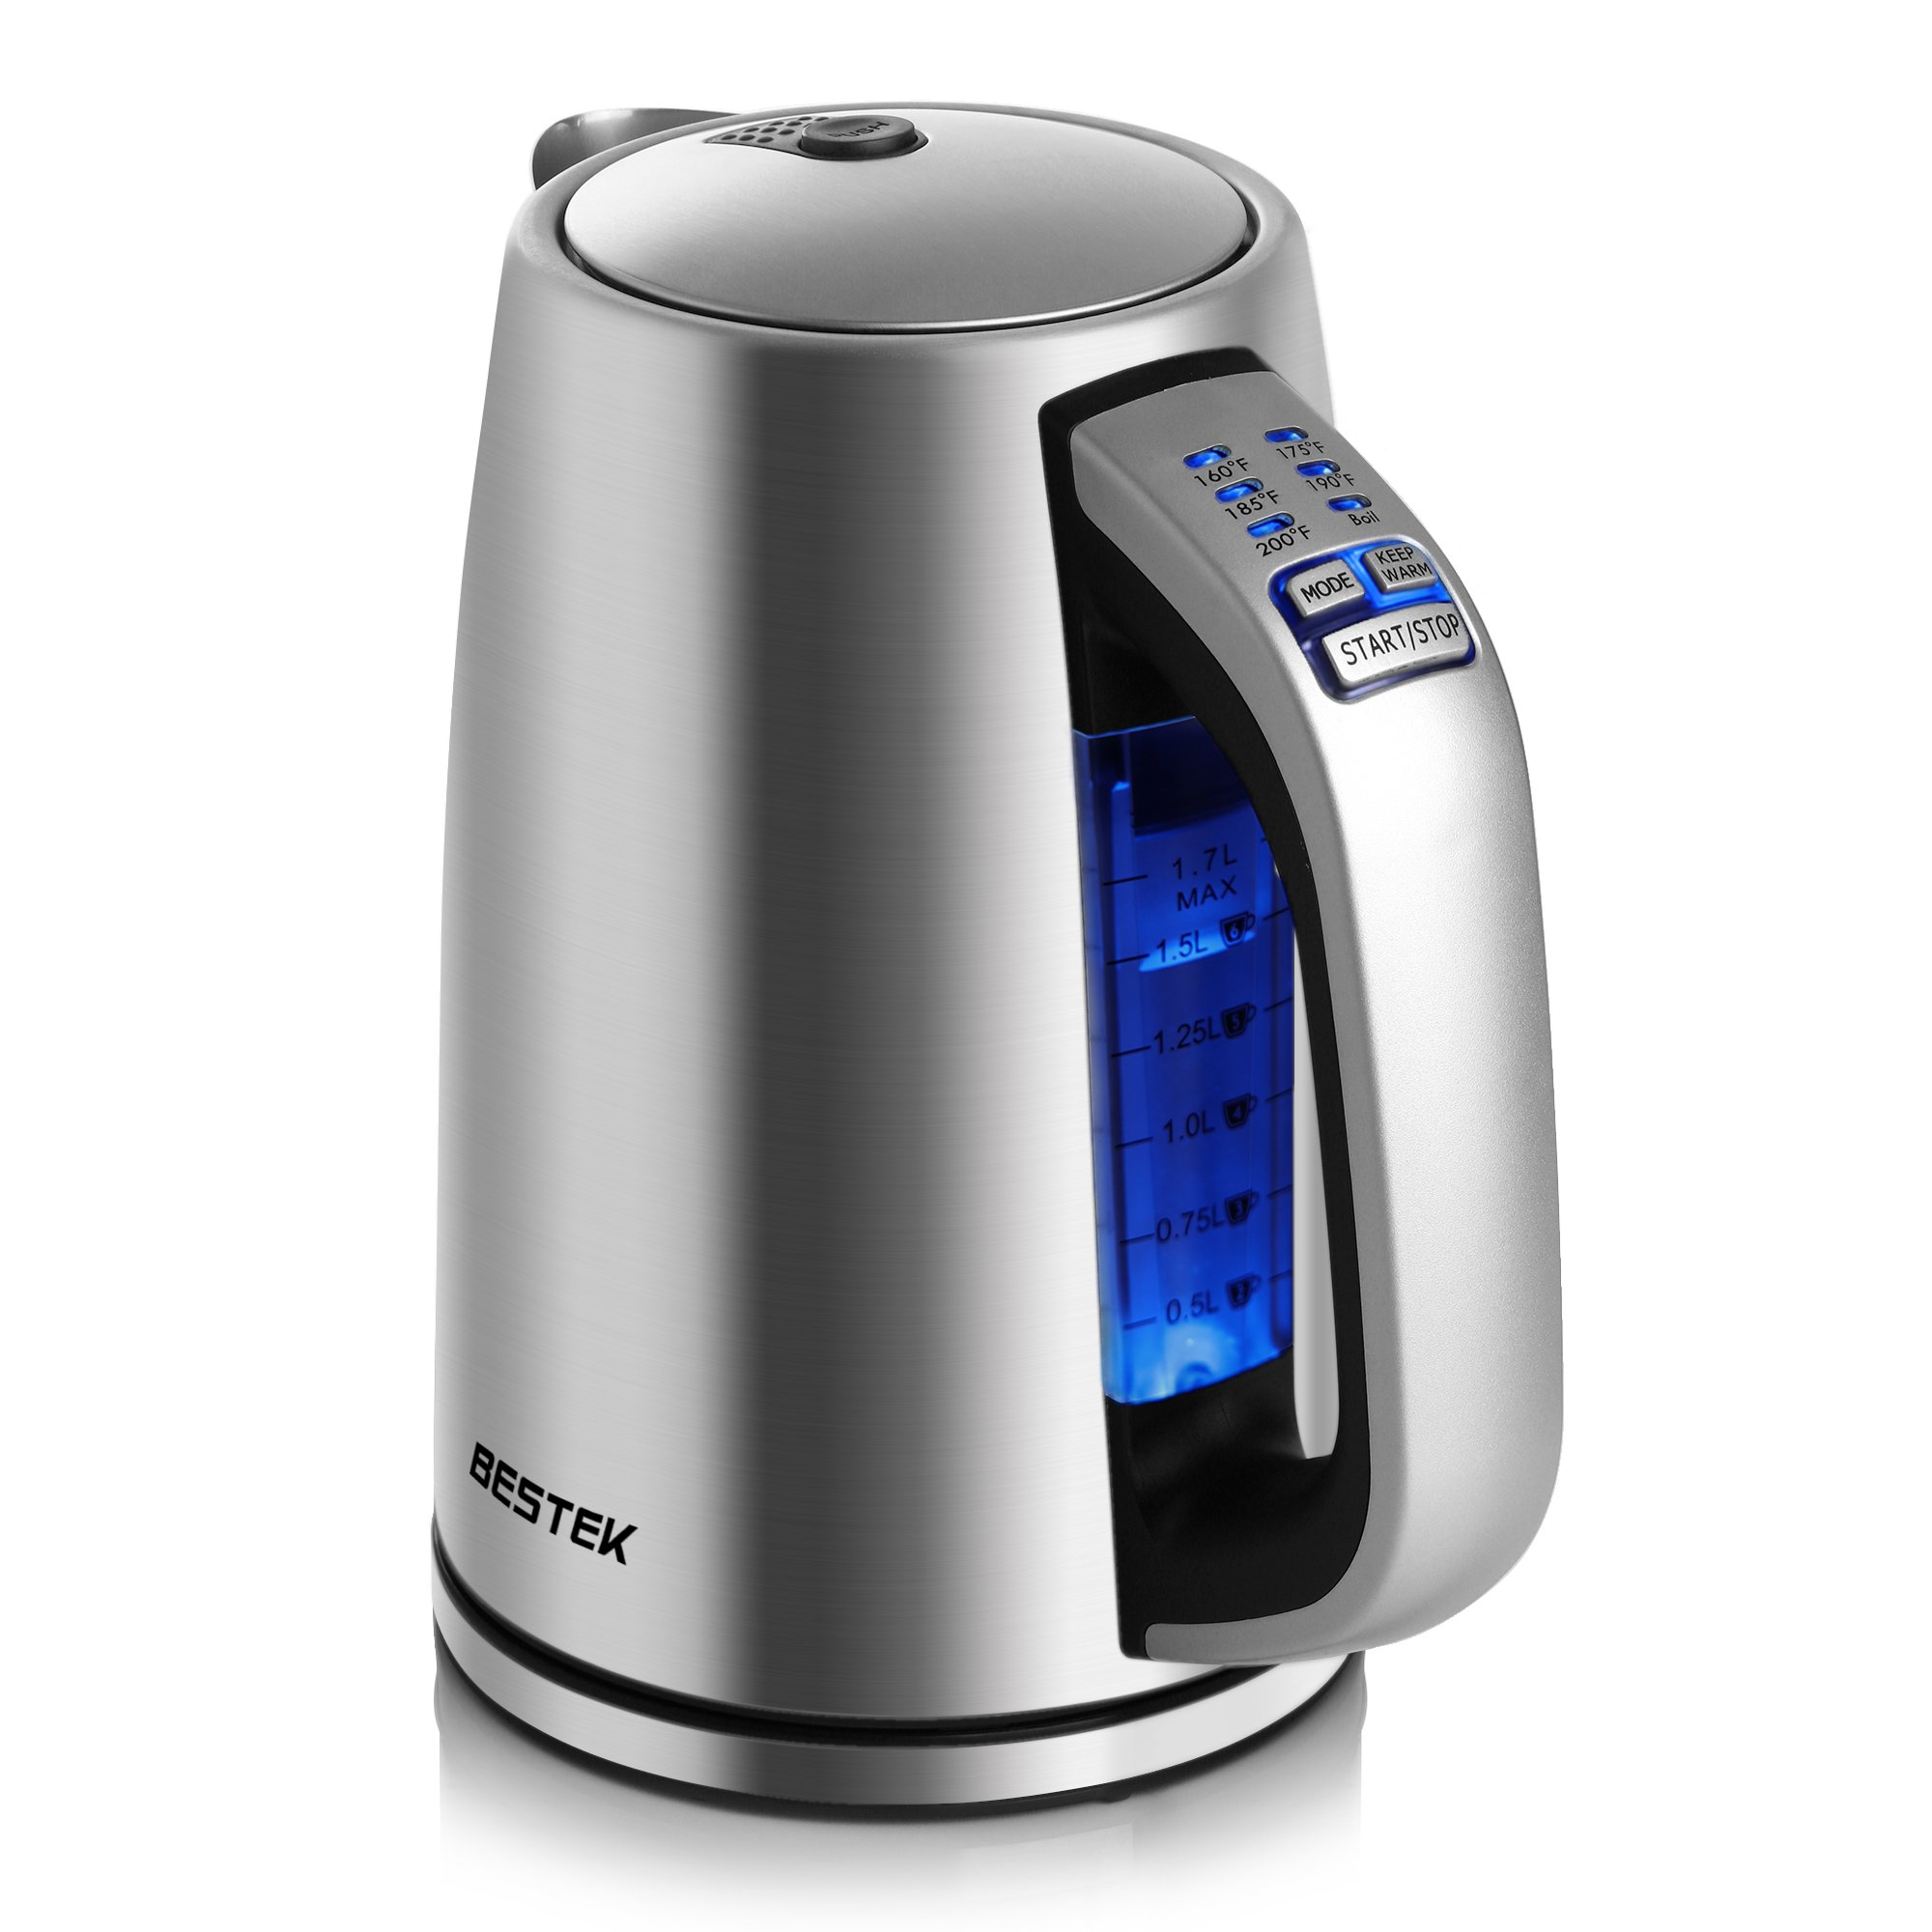 BESTEK Electric Kettle 1.7L Stainless Steel Water Boiler Adjustable Temperature Control Tea Kettle Strix Control, Auto Shut Off, Boil Dry Protection Keep Warm